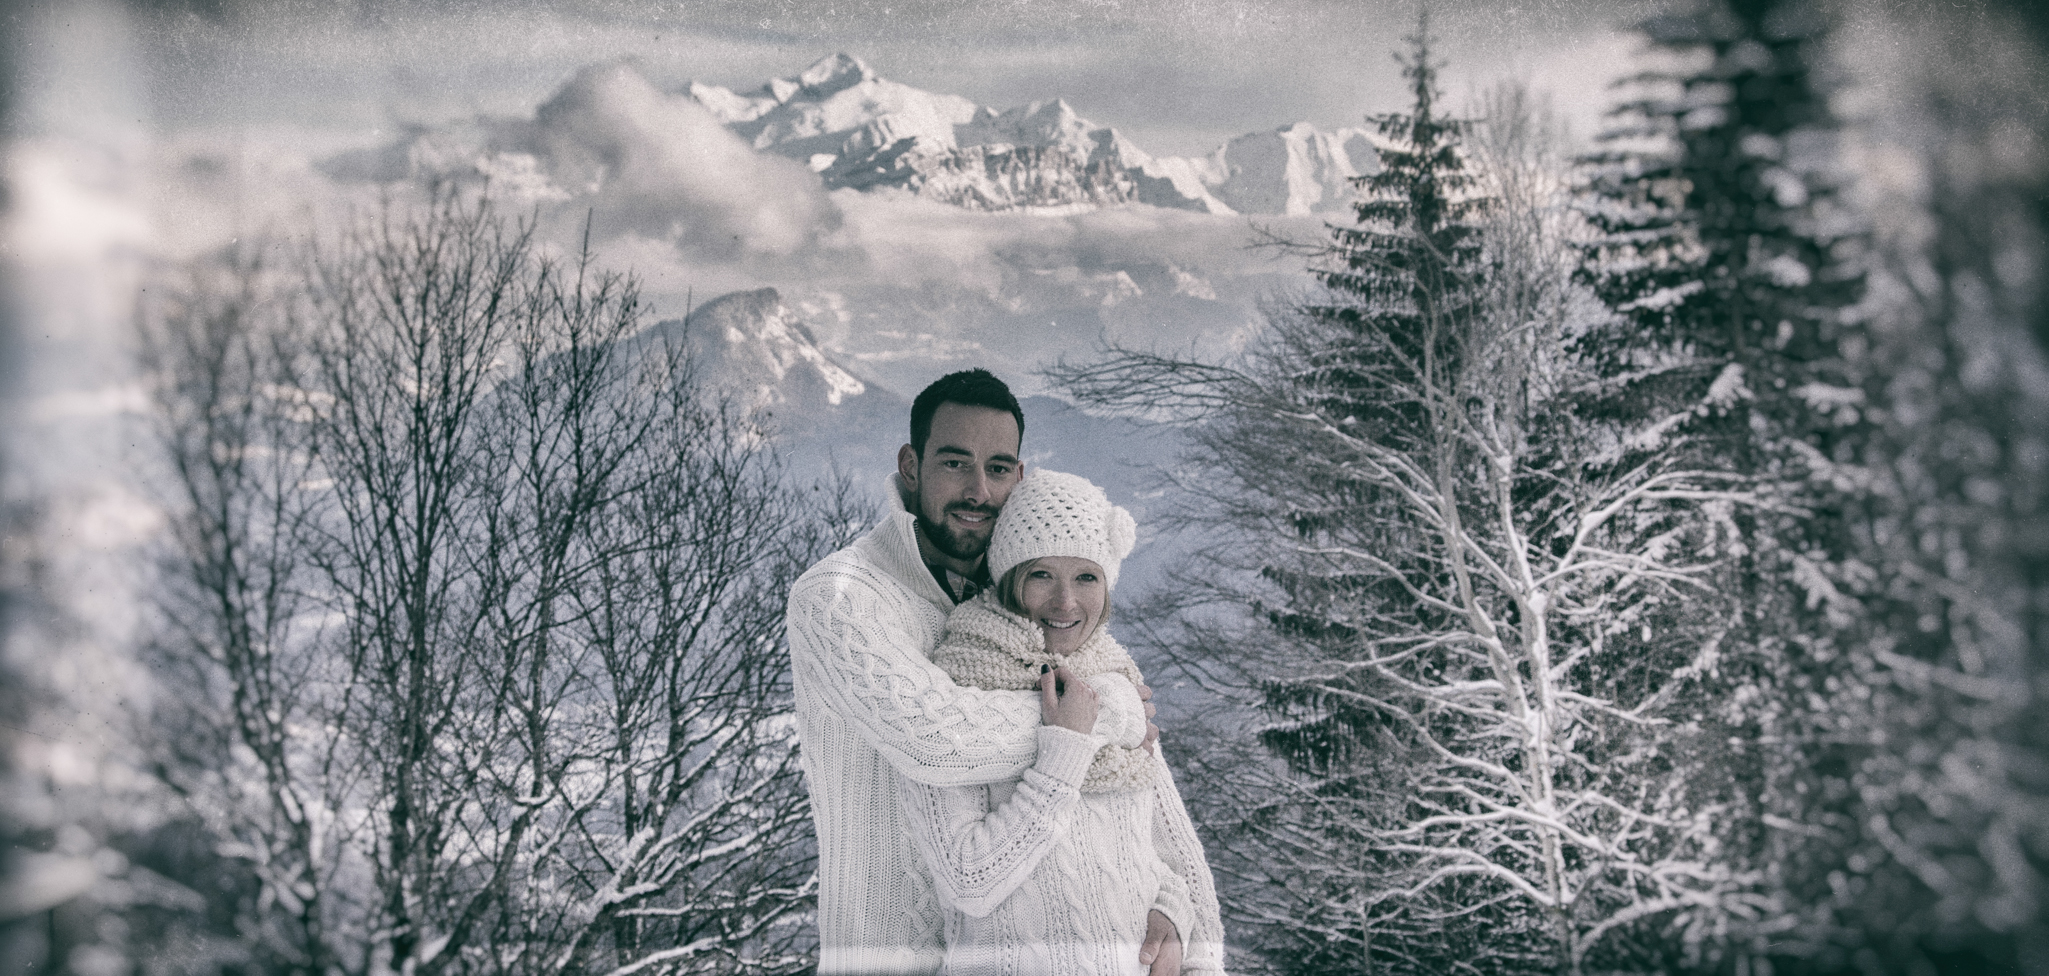 photographe-mariage-ardeche-rhone-alpes-geneve-suisse-photo-Megève-Courchevel--24